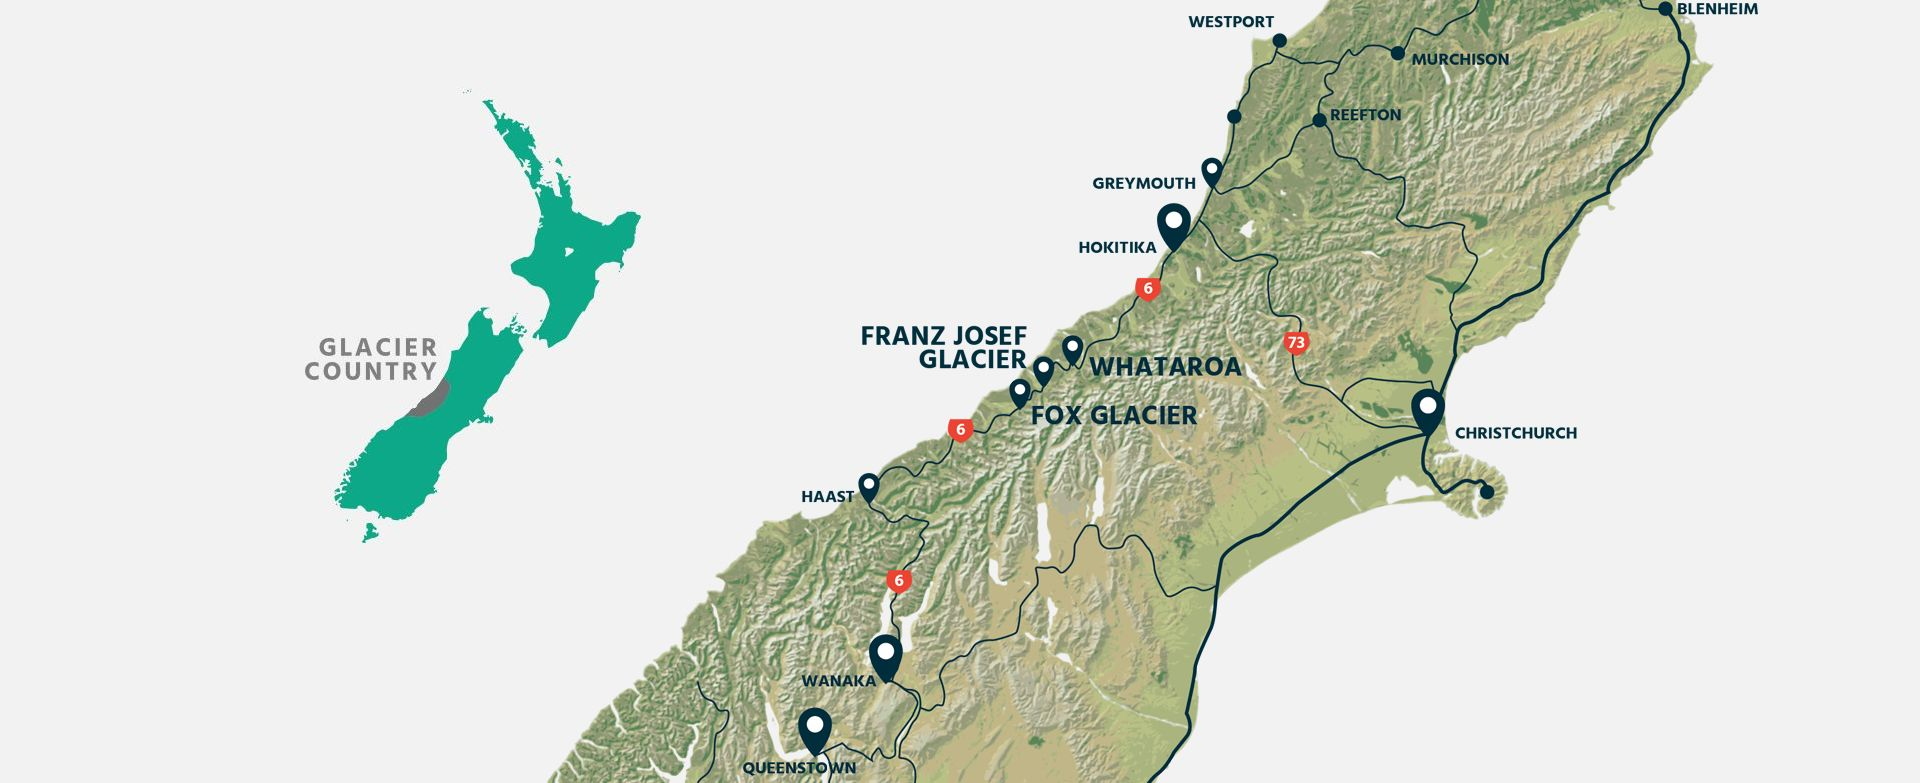 Visitor Guide Fox Glacier & Franz Josef Glacier Accommodation West Coast New Zealand